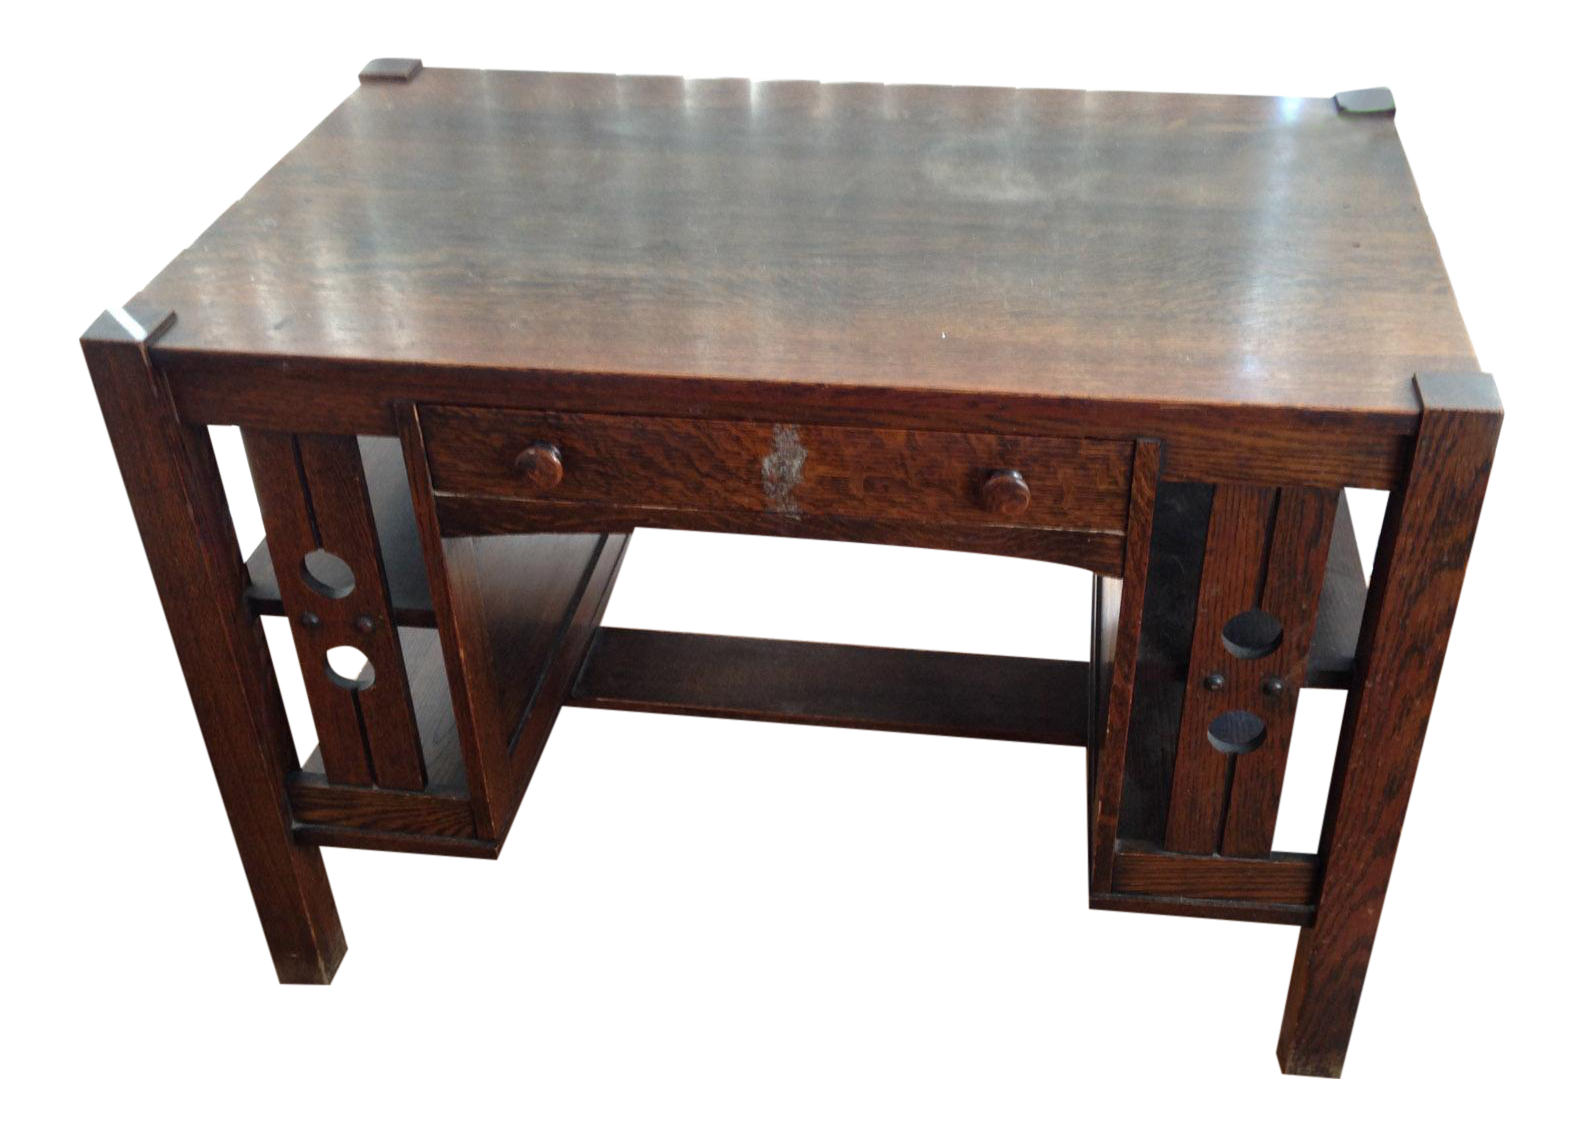 Antique Mission Oak Arts and Crafts Library Desk With Shelves | Chairish - Antique Mission Oak Arts And Crafts Library Desk With Shelves